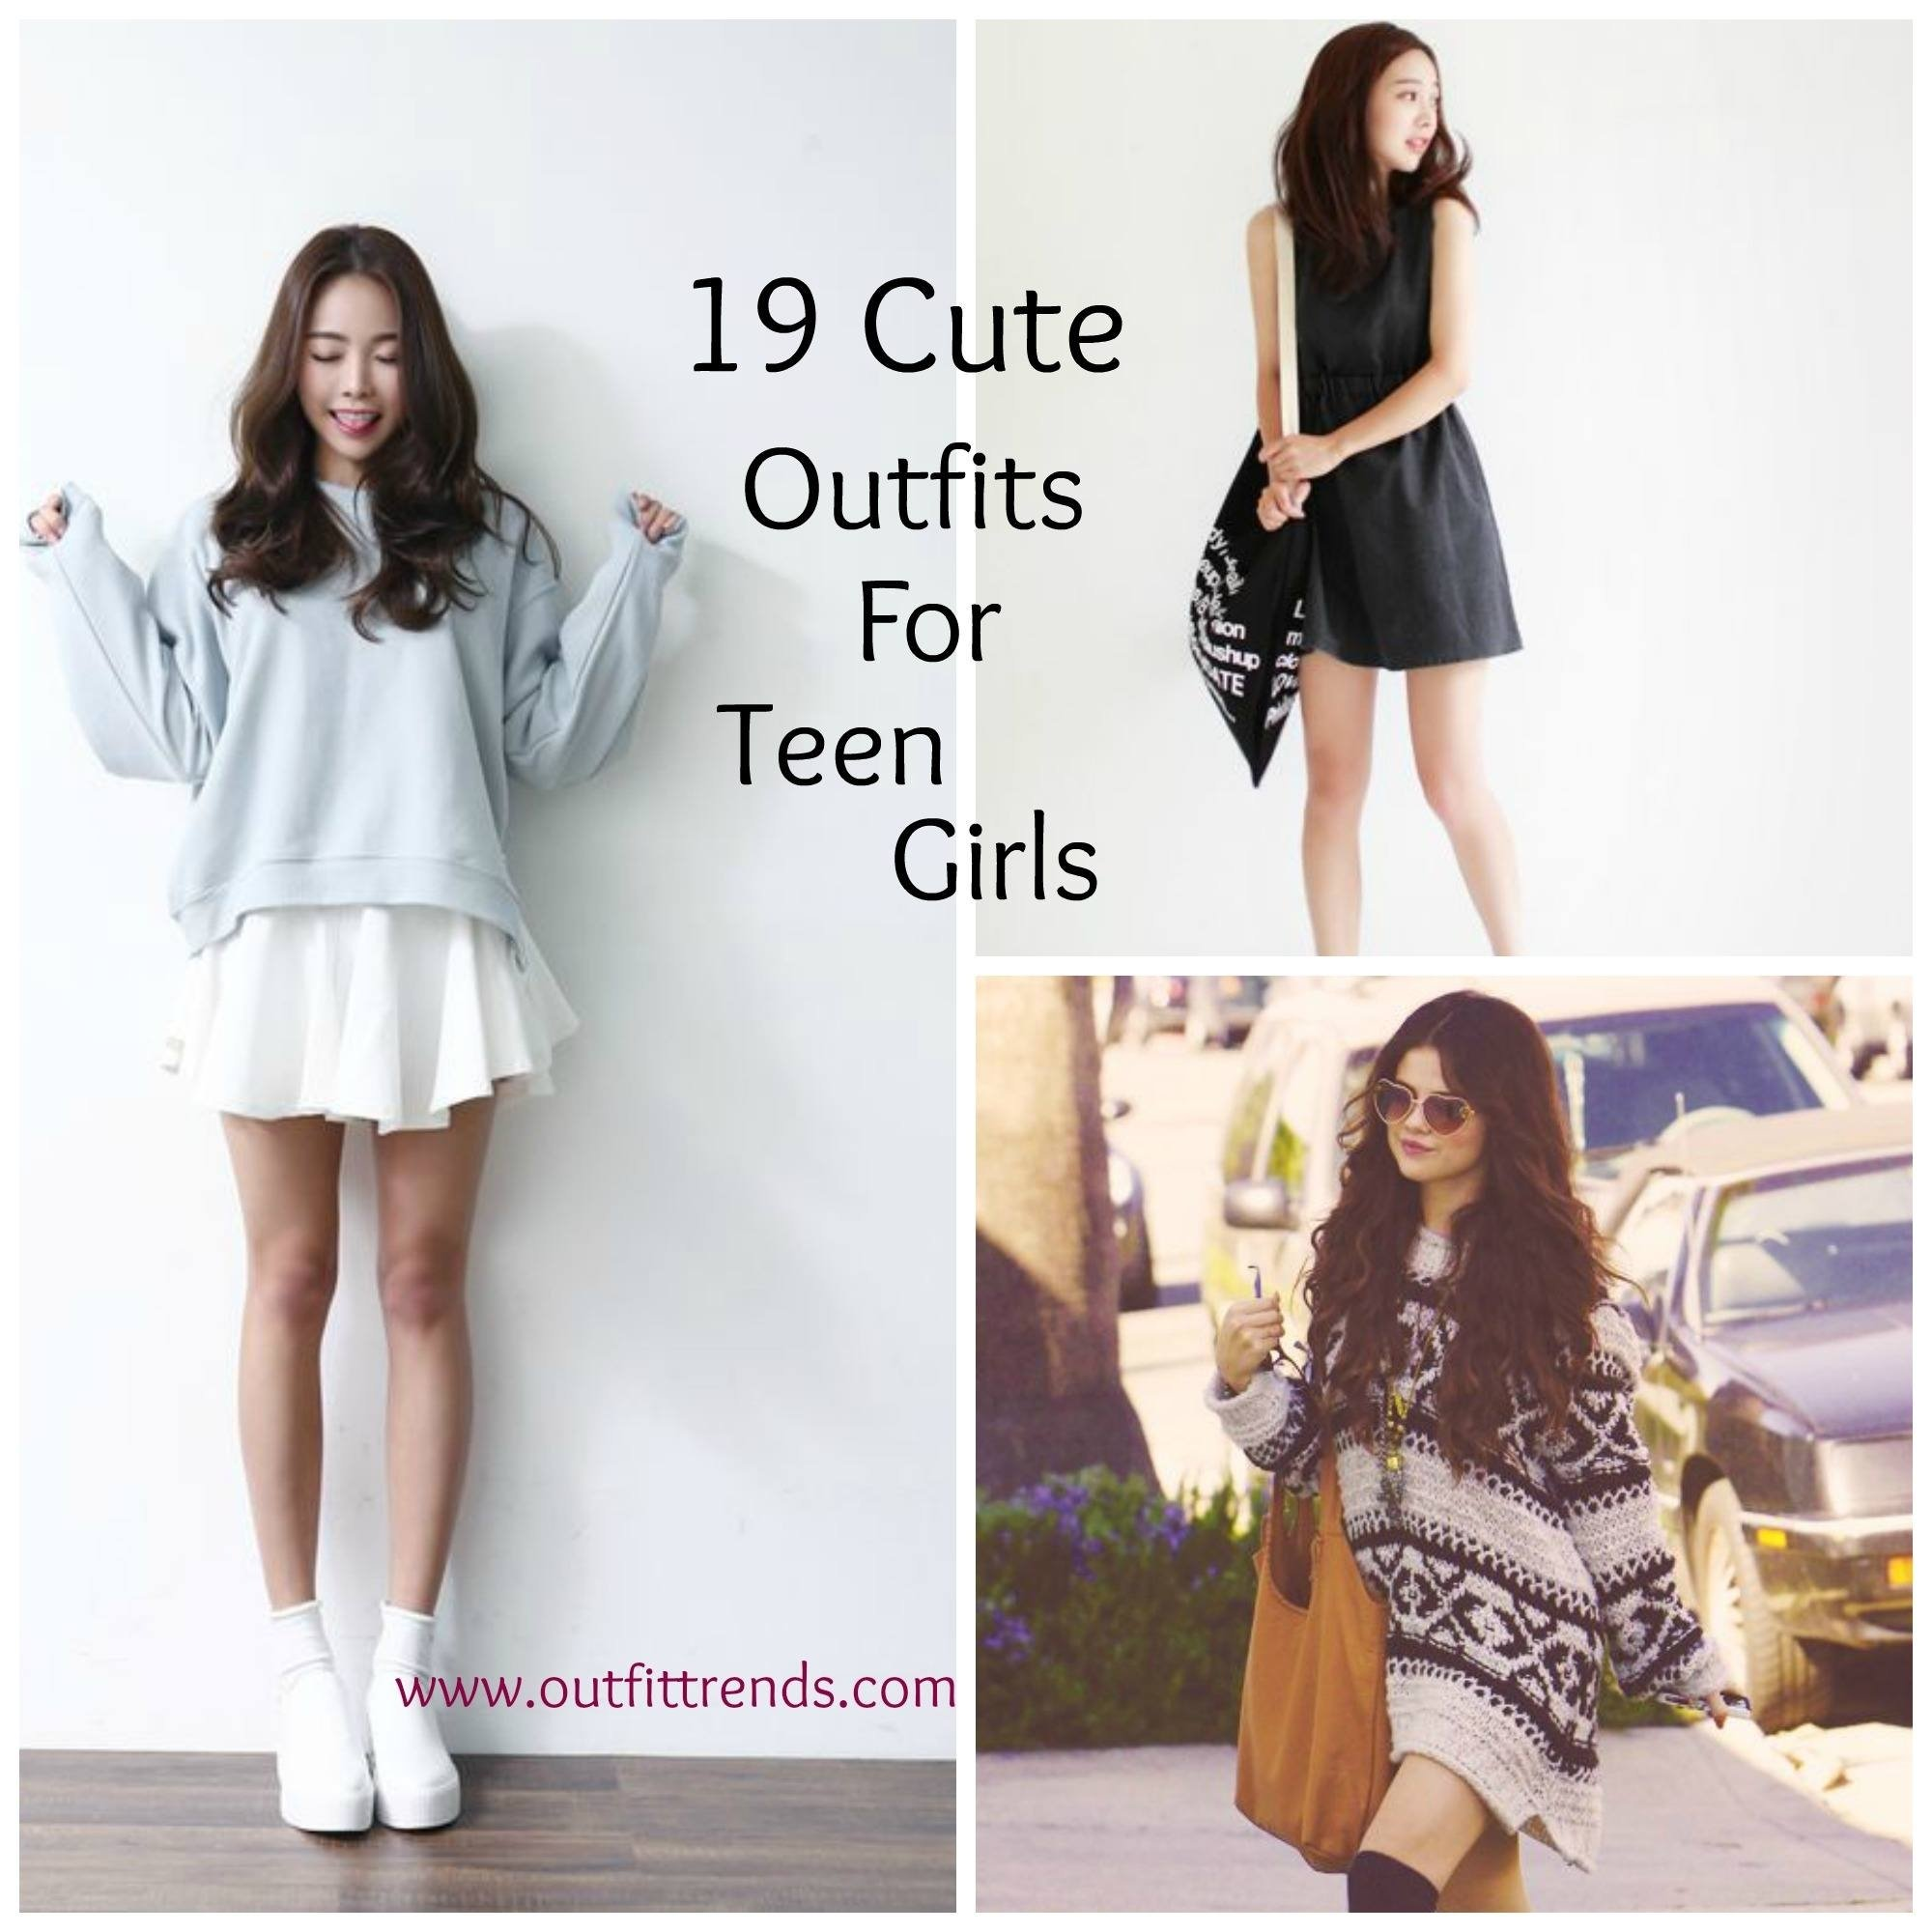 10 Awesome Outfit Ideas For Teenage Girls casual outfits for teen girls 19 cute dresses for casual look